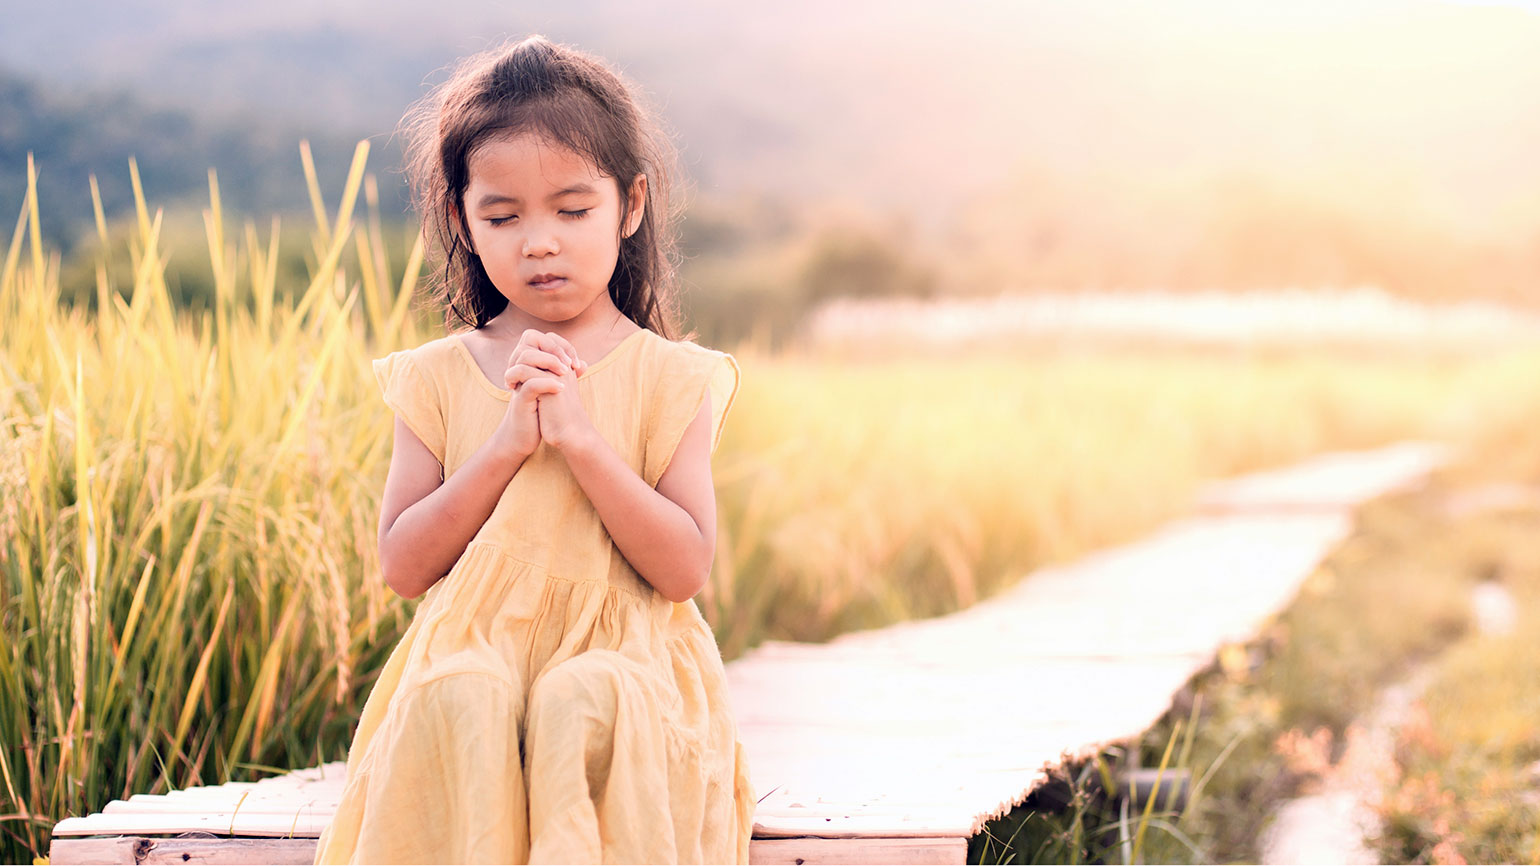 A young girl prays outdoors